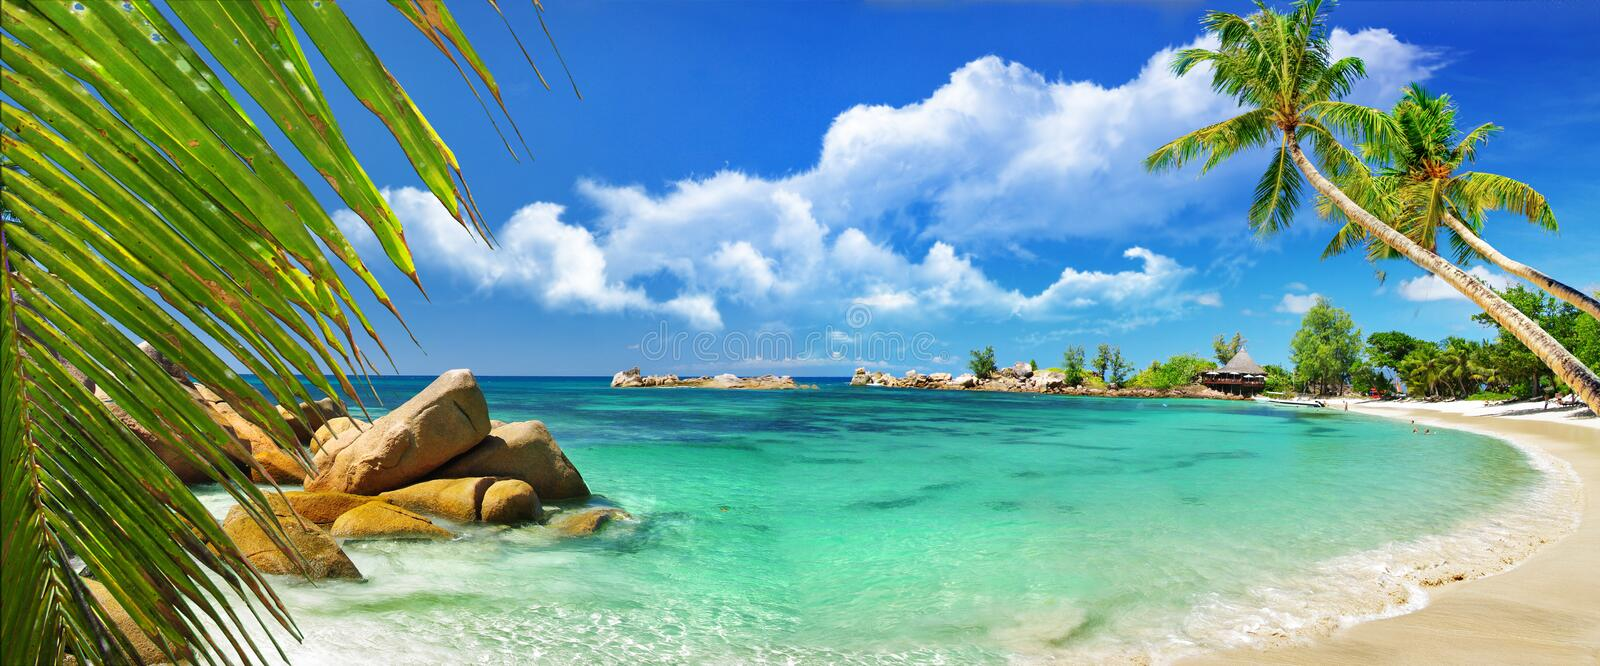 Seychelles islands-tropical paradise royalty free stock photo